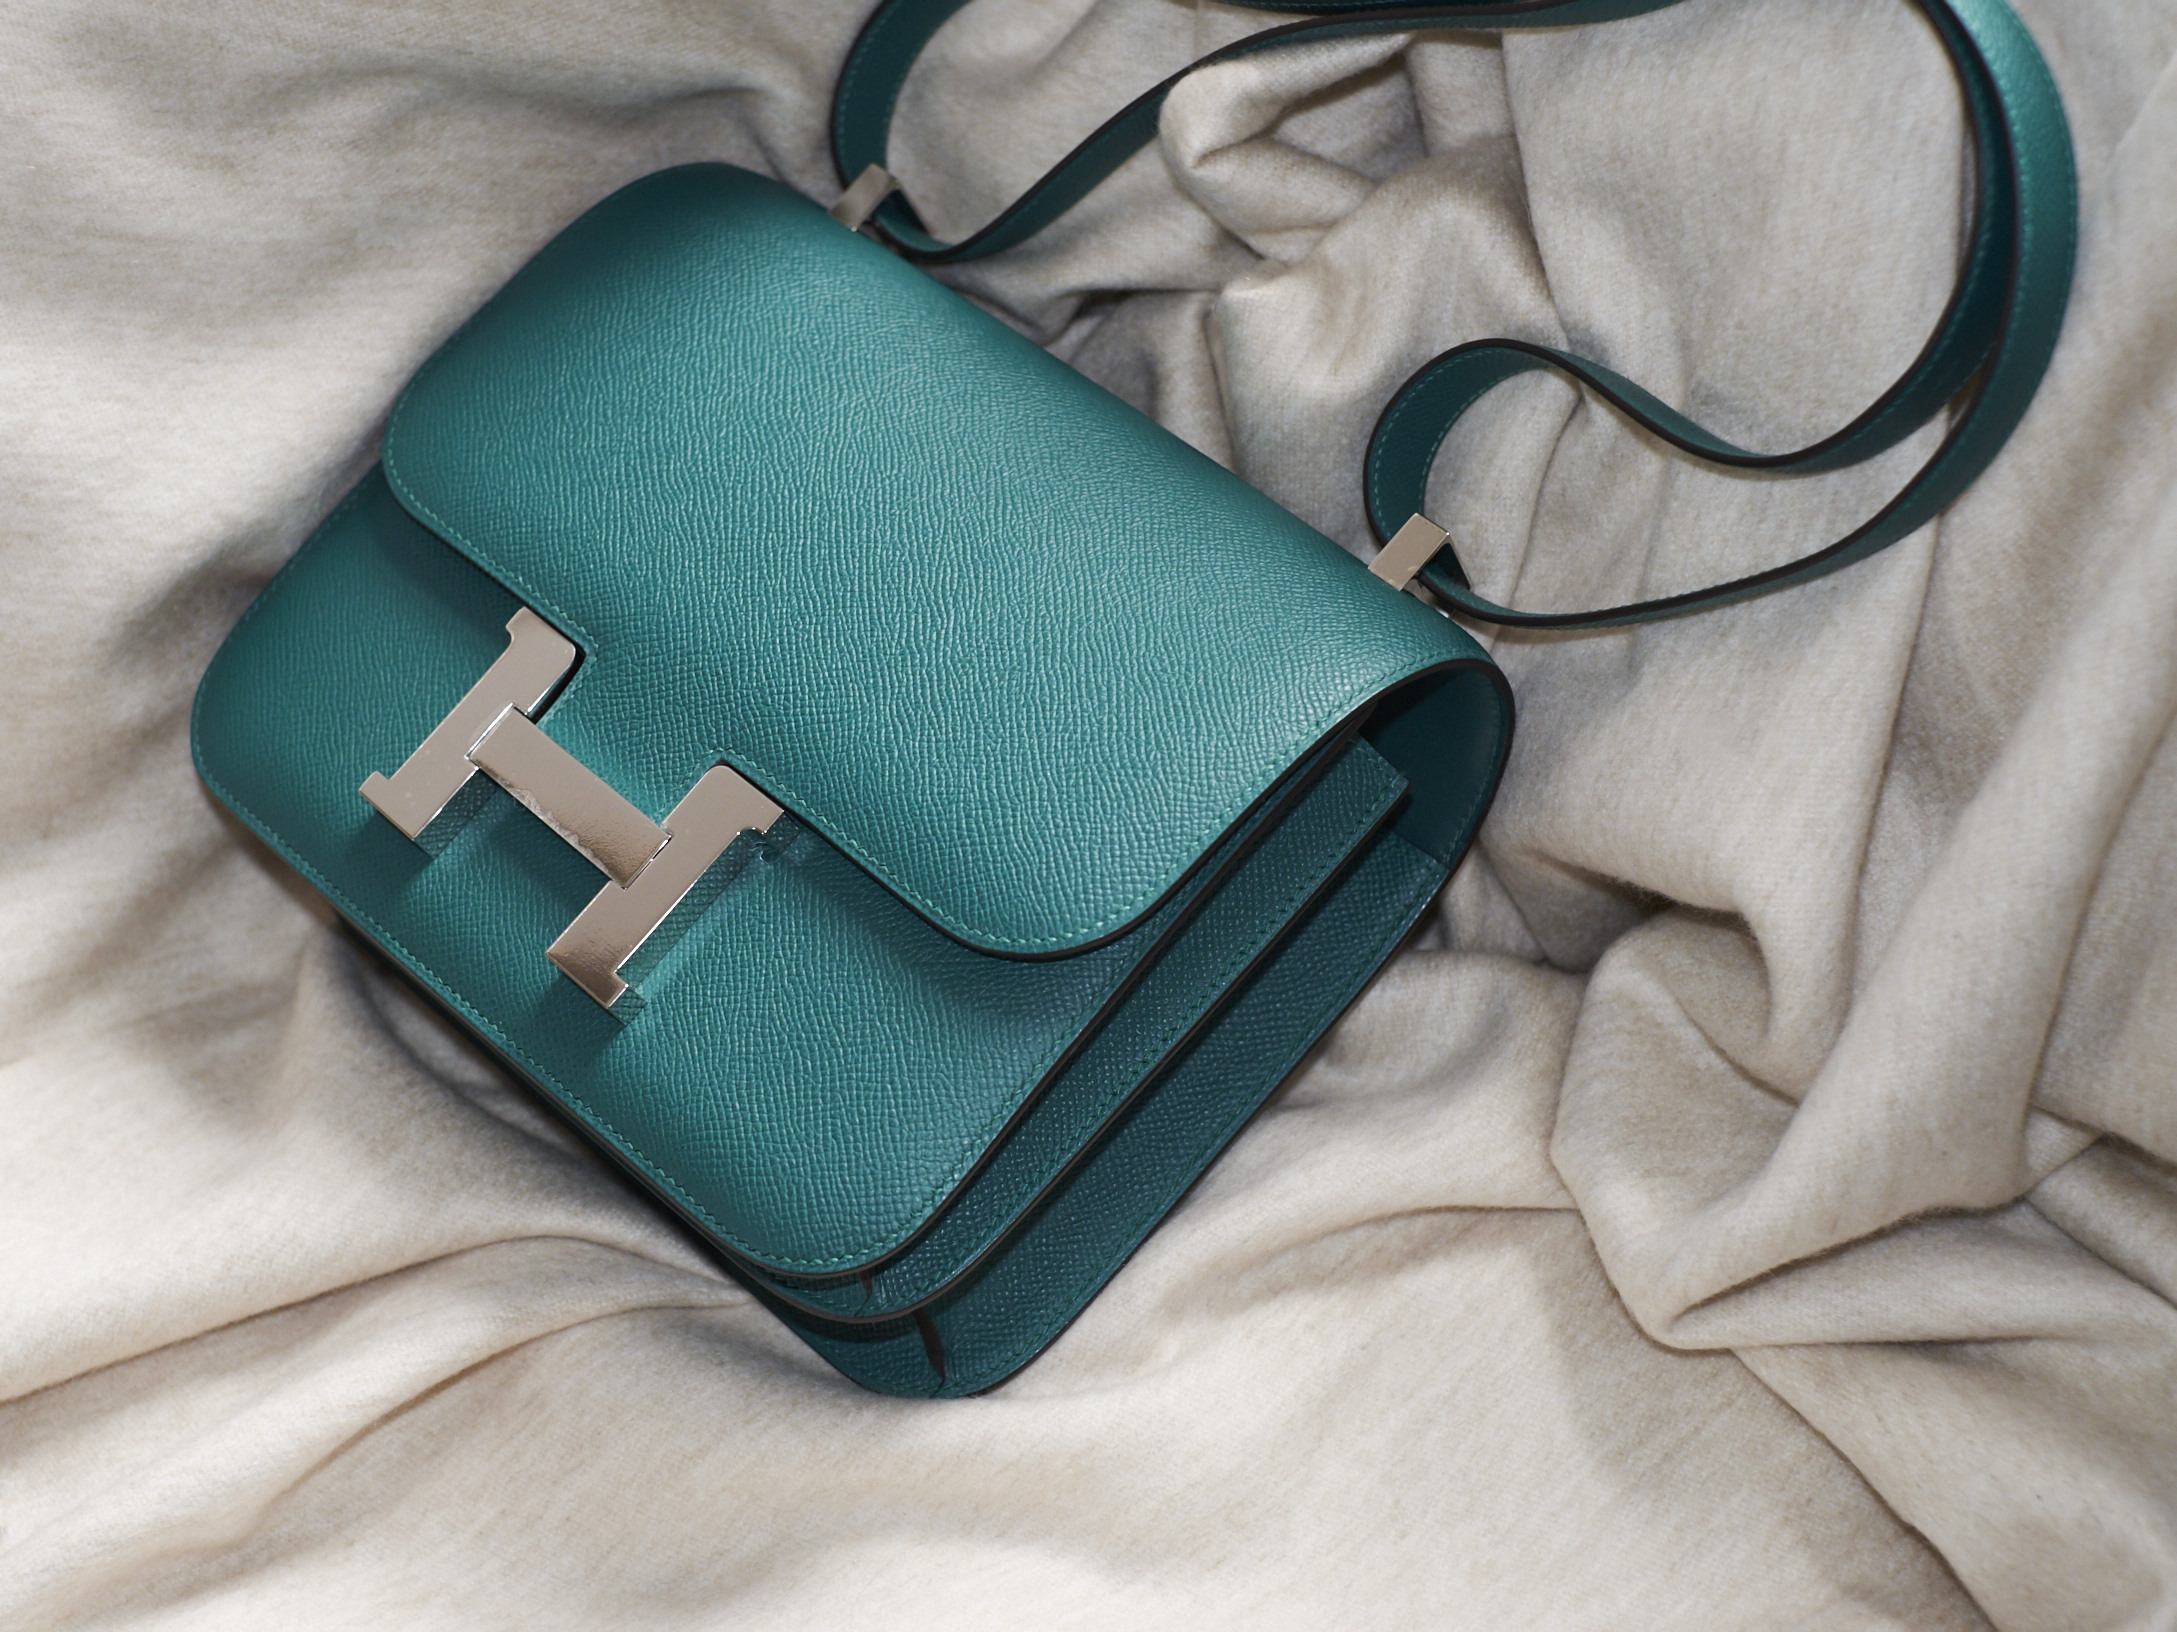 Teal Hermes Constance Bag